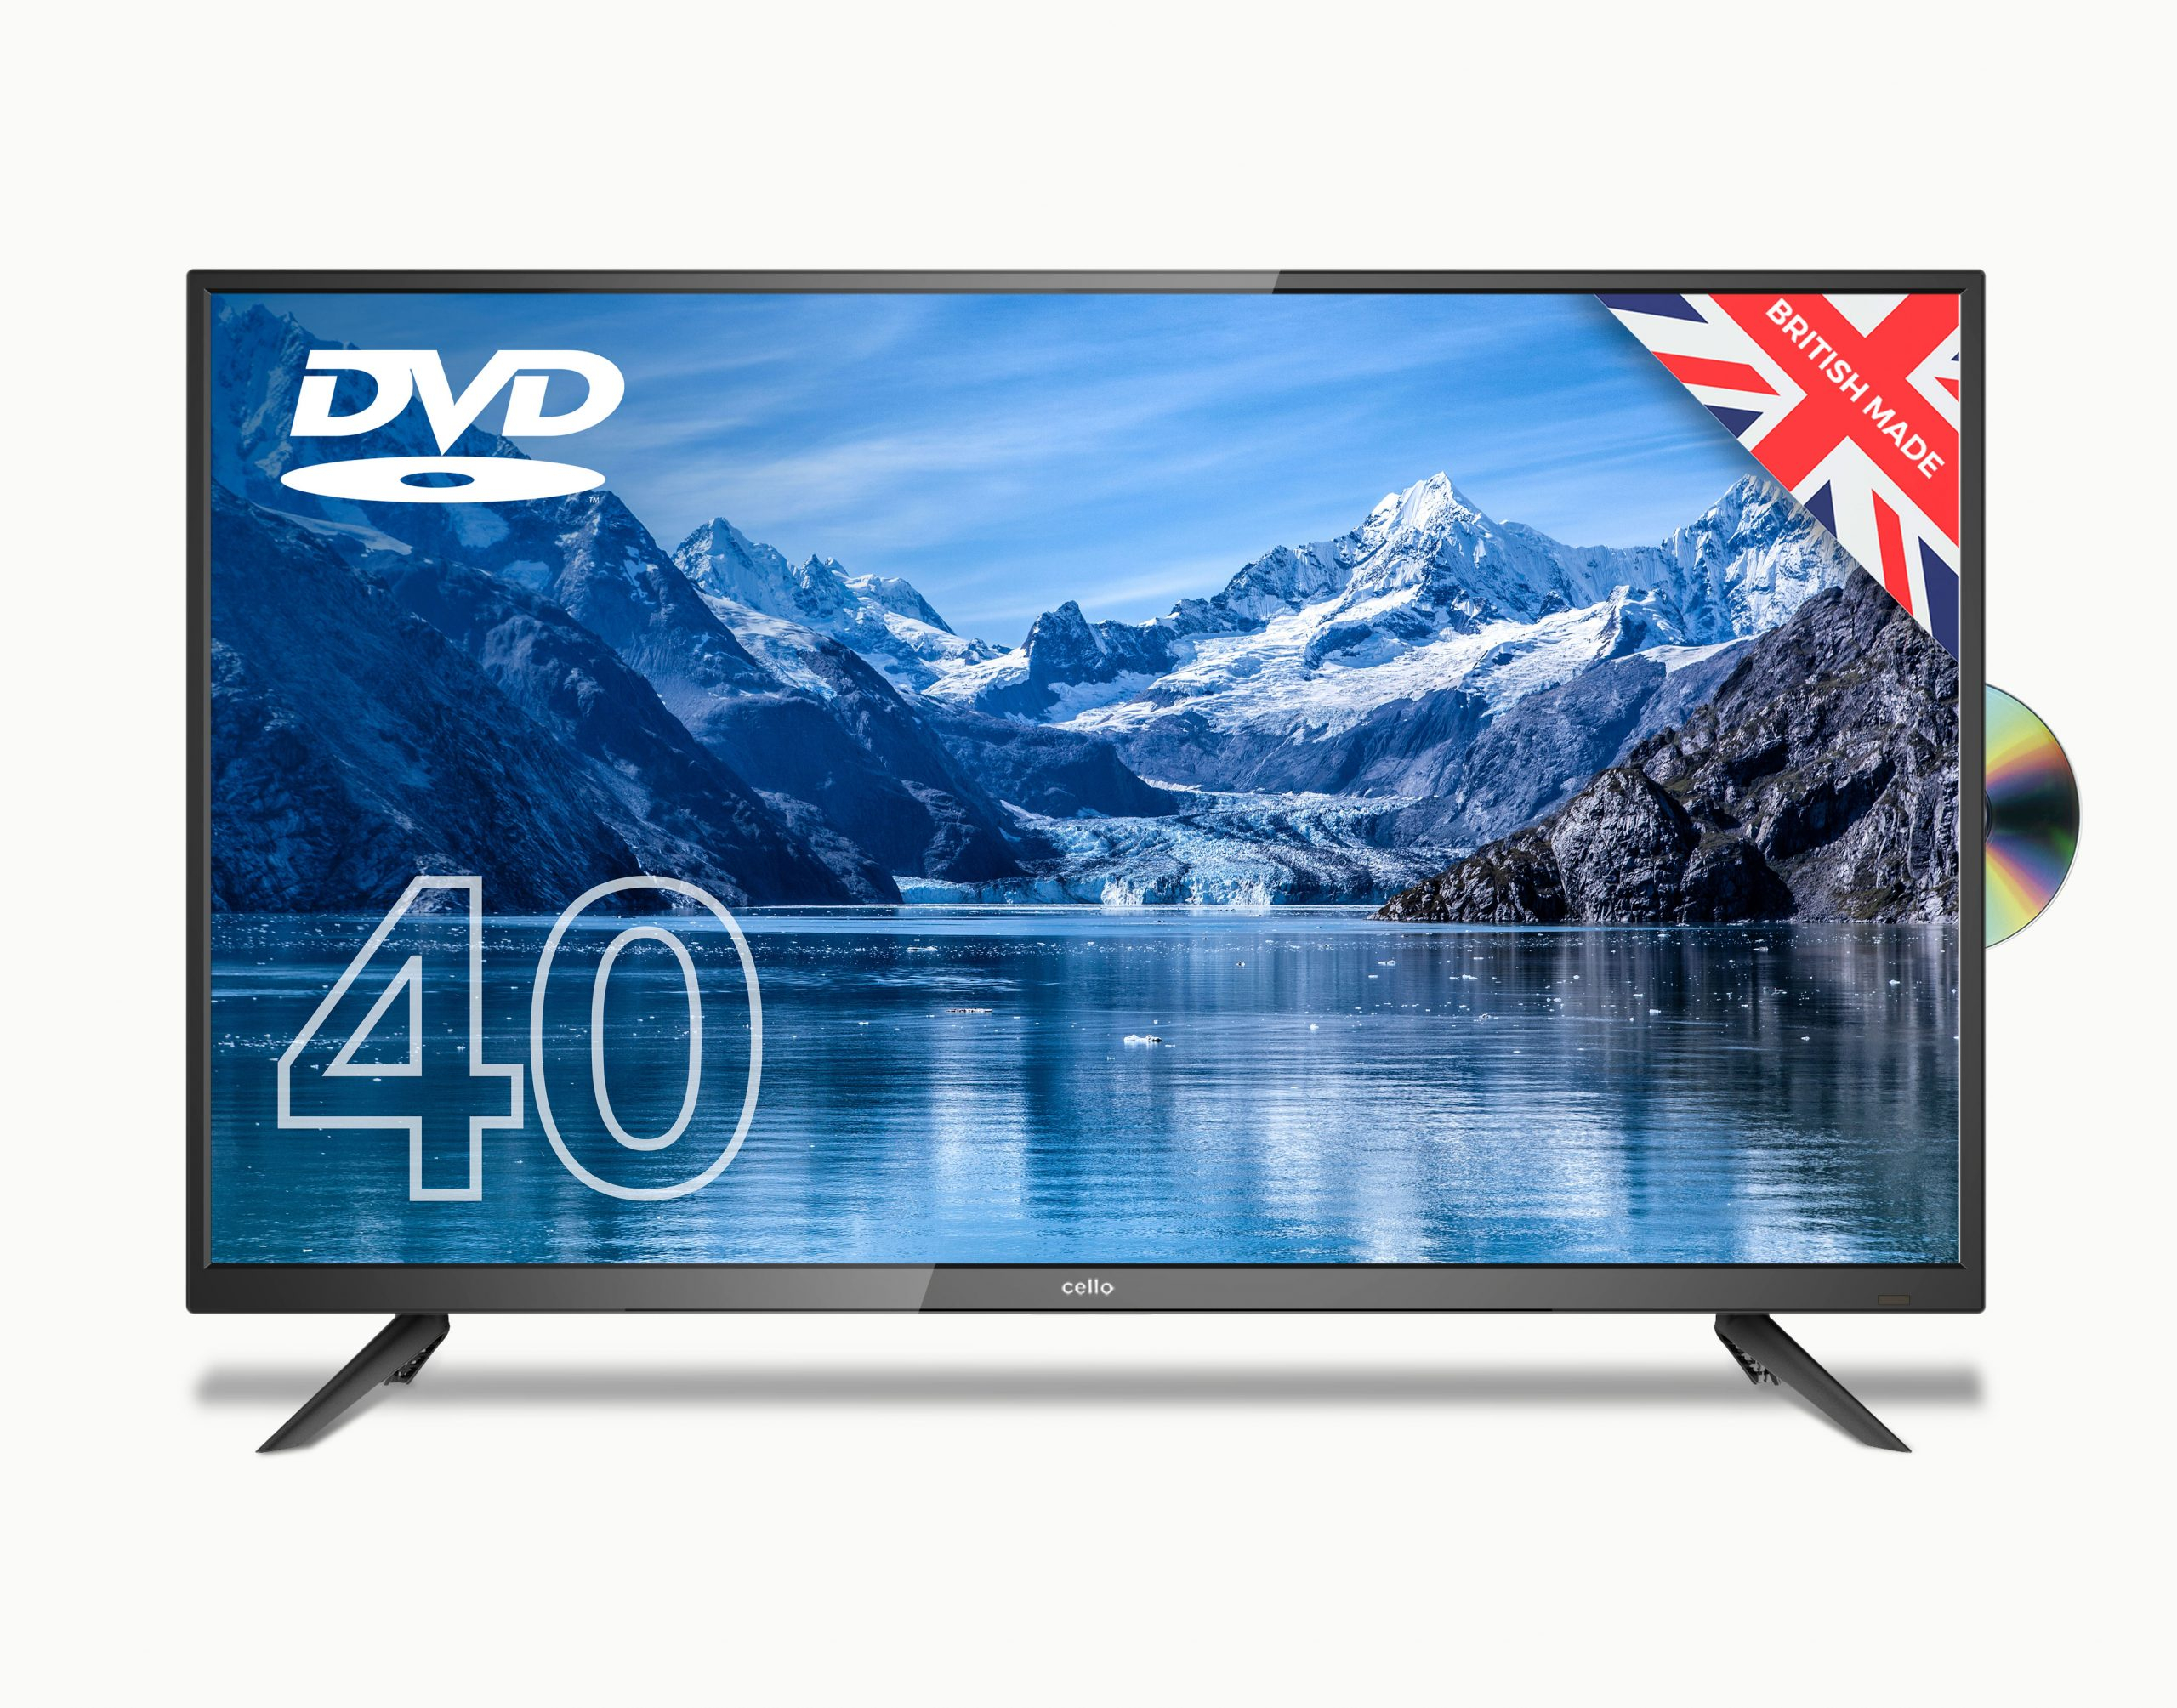 Cello 40 Inch Full HD TV with Freeview & DVD